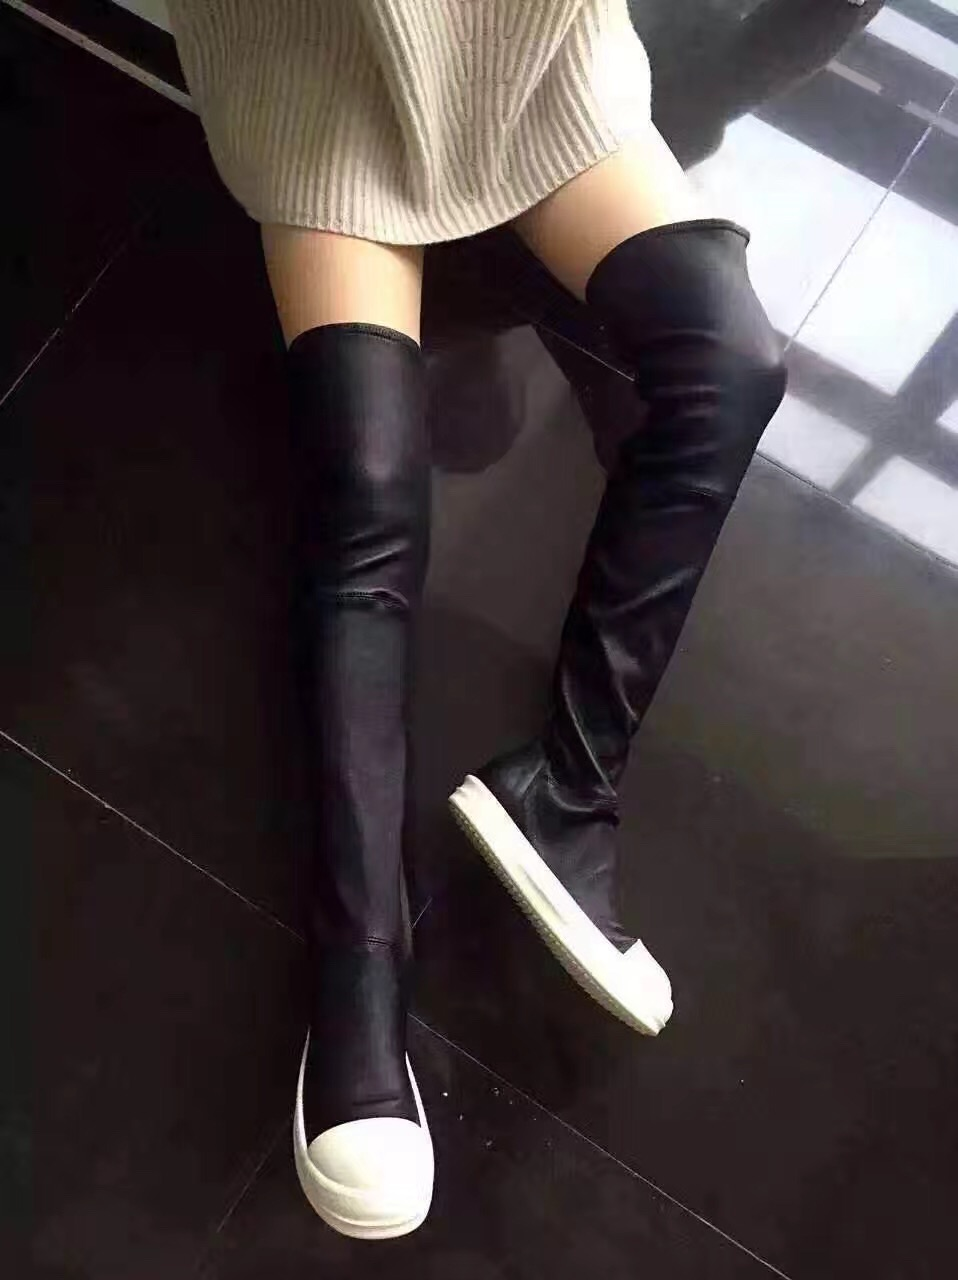 e53569f81e High Quality Black White Rubber Sole Over the Knee Boots Fashion Sock  Elastic Boot Winter Flat Boots For Women Free Ship-in Over-the-Knee Boots  from Shoes ...